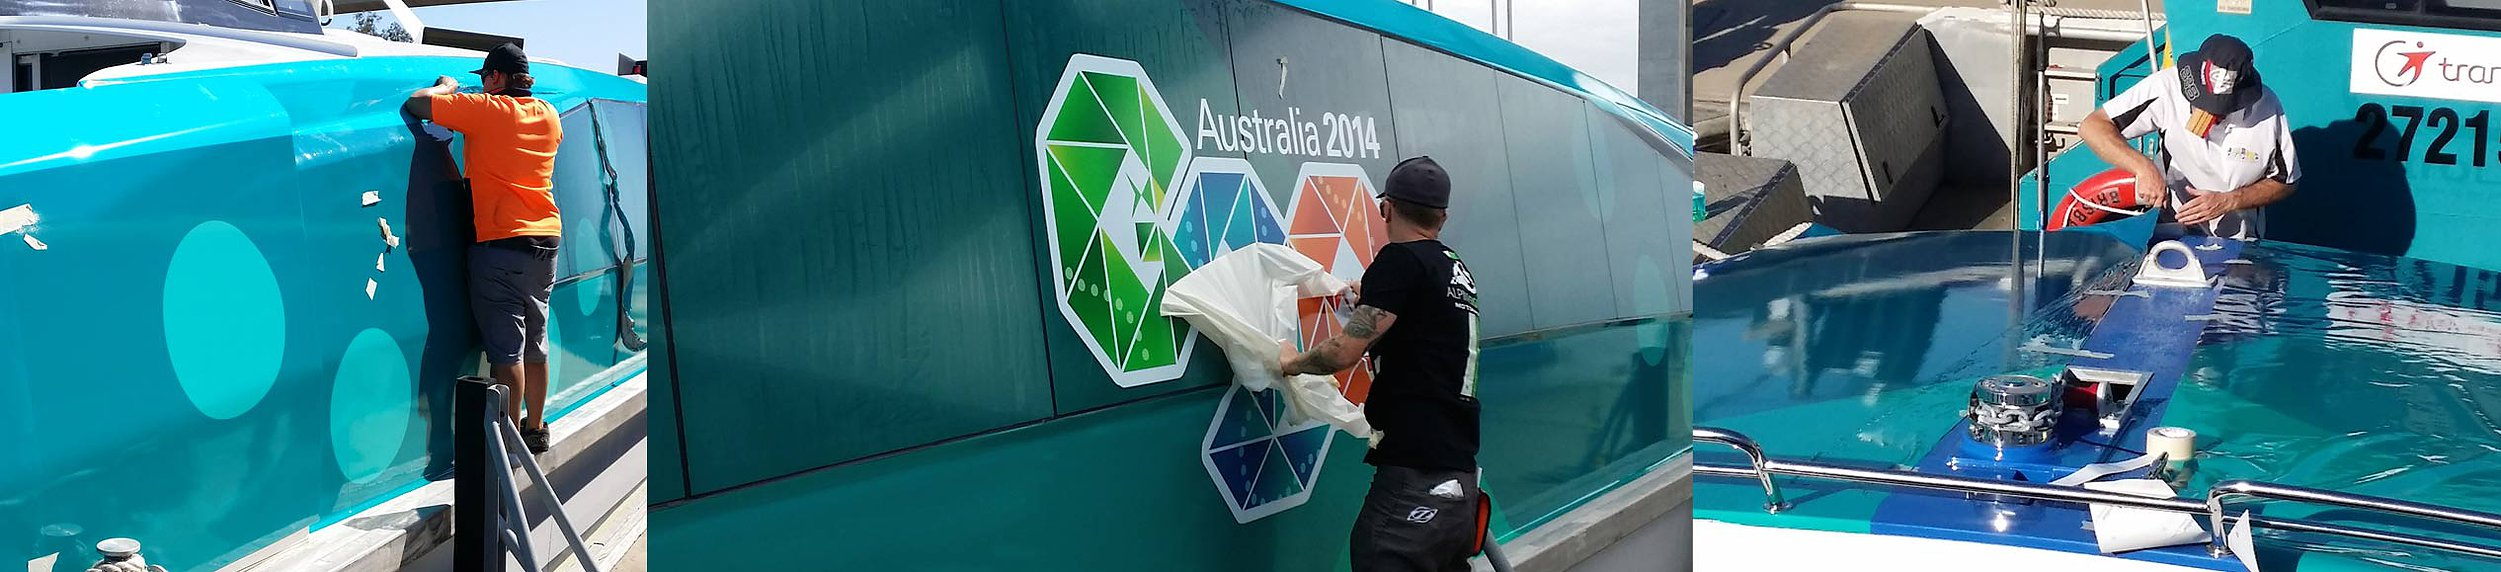 Brisbane International Tennis Project - Alpine Signs